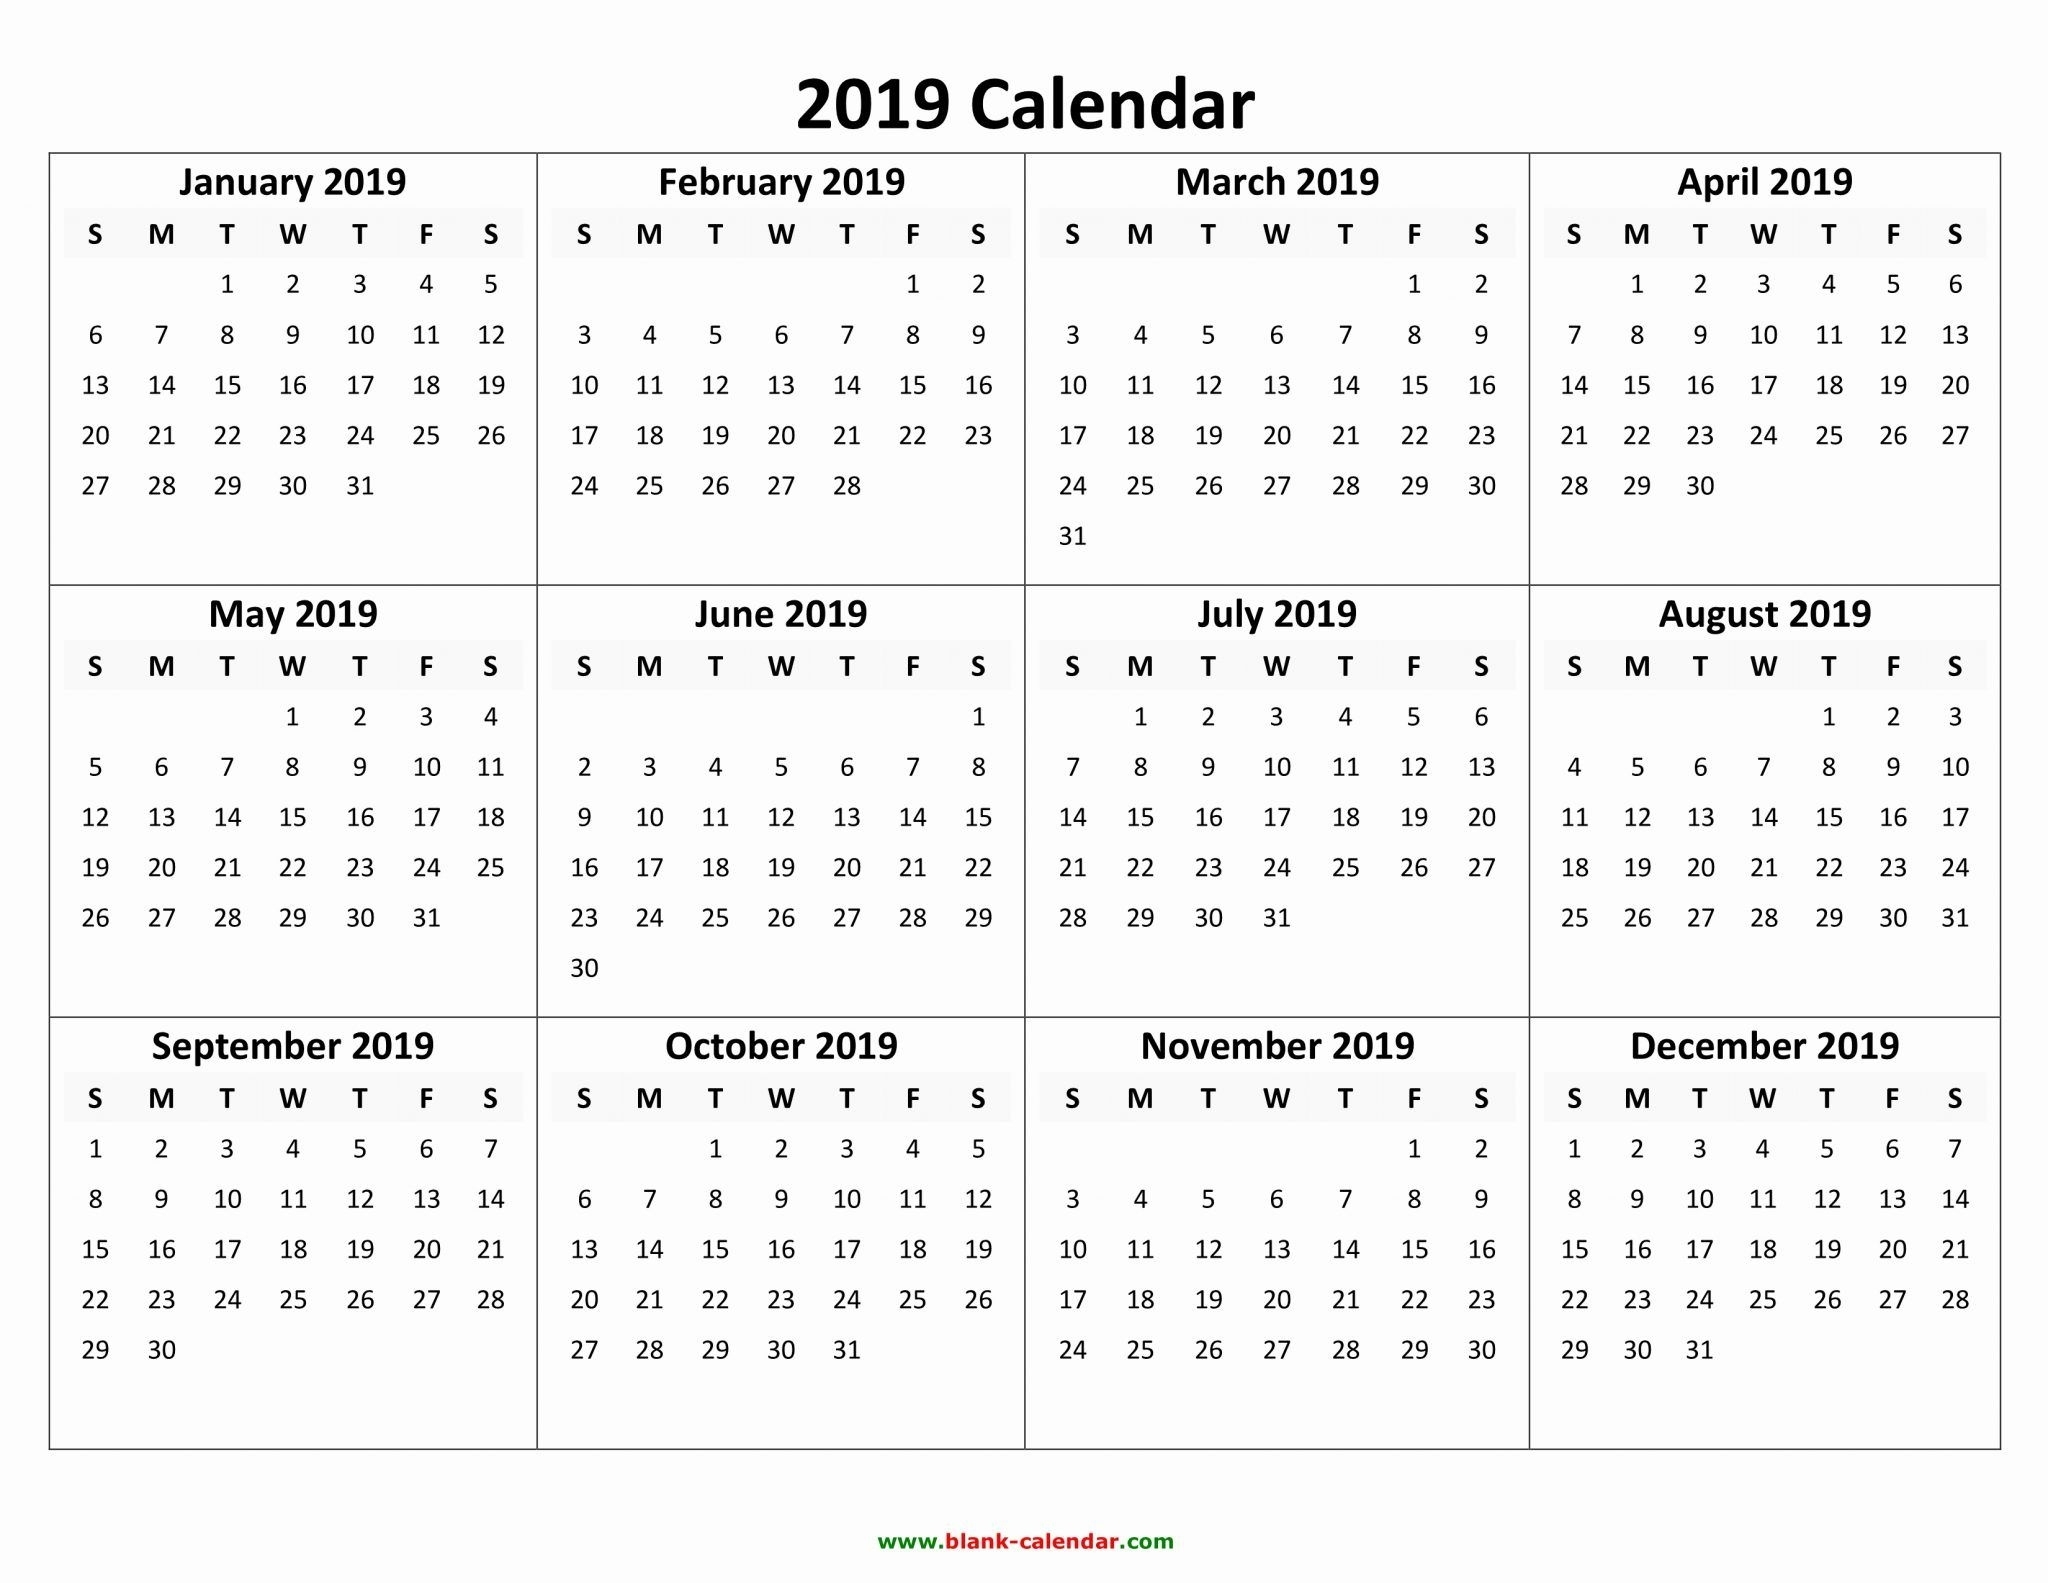 Free Printable Calendar 2019 With Holidays | Blank 12 Month Calendar Template Months On One Page Word